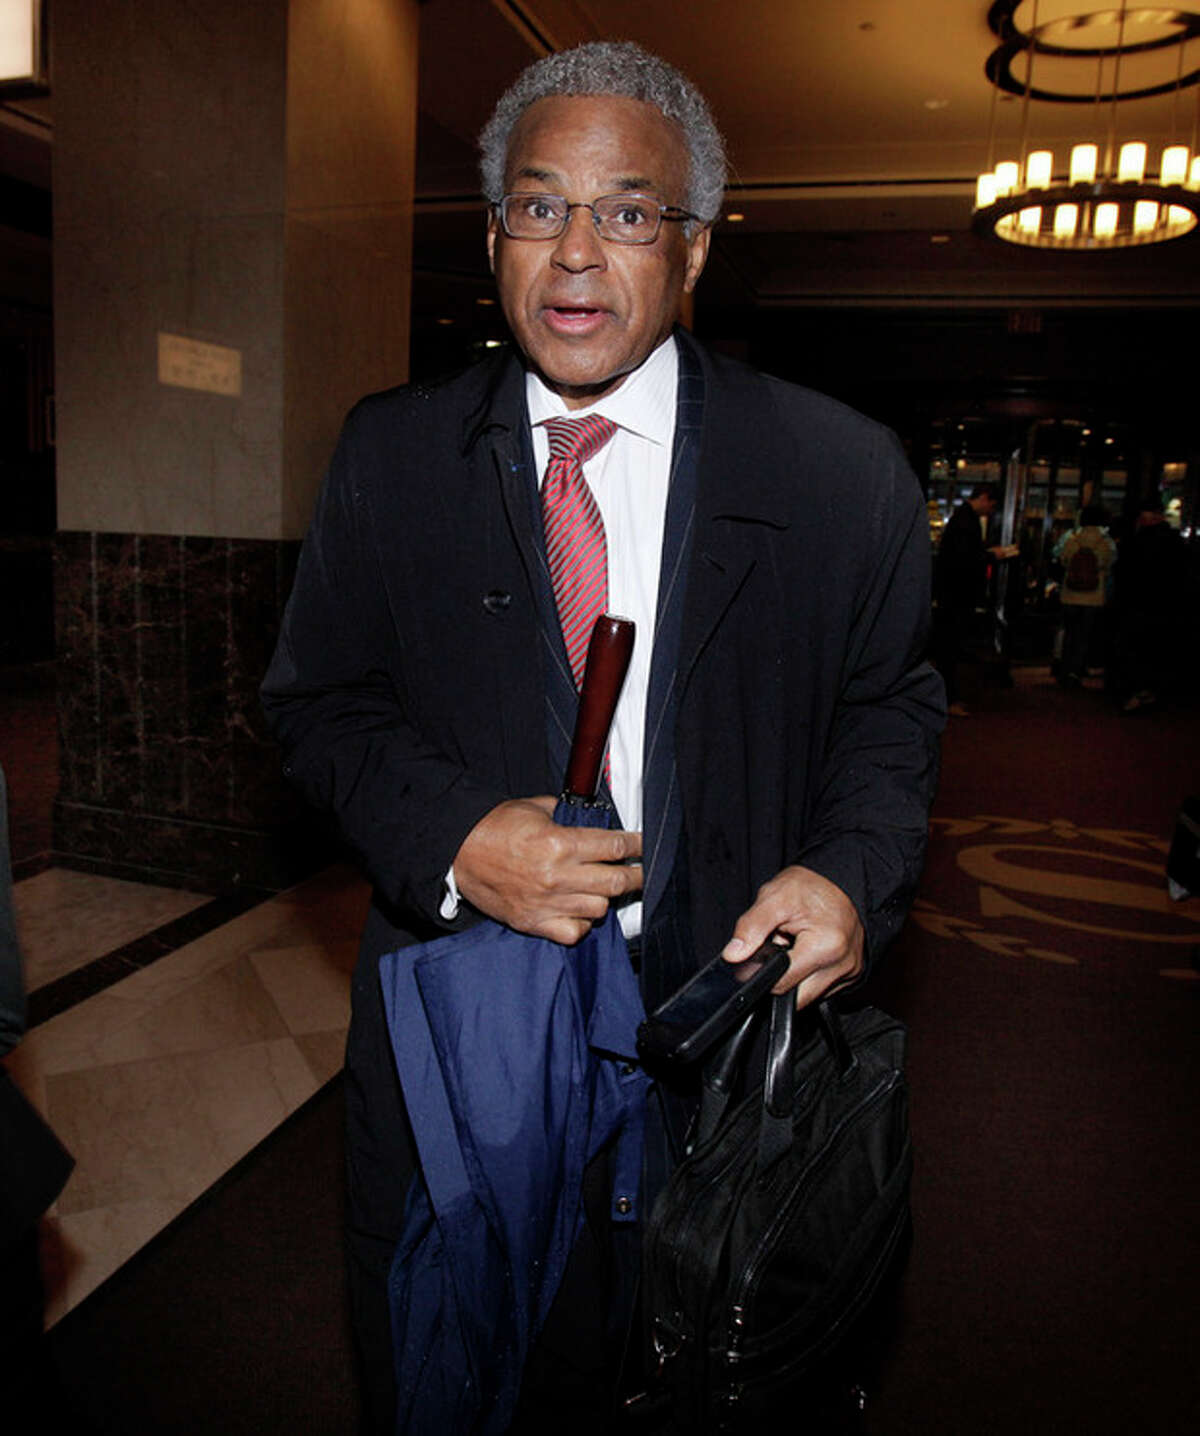 Billy Hunter, Executive Director of the National Basketball Players Association, arrives for the NBA labor negotiations, in New York, Wednesday, Oct. 19, 2011. NBA owners and players are meeting for a second straight day, shortly after finishing a 16-hour marathon with a federal mediator.(AP Photo/Richard Drew)